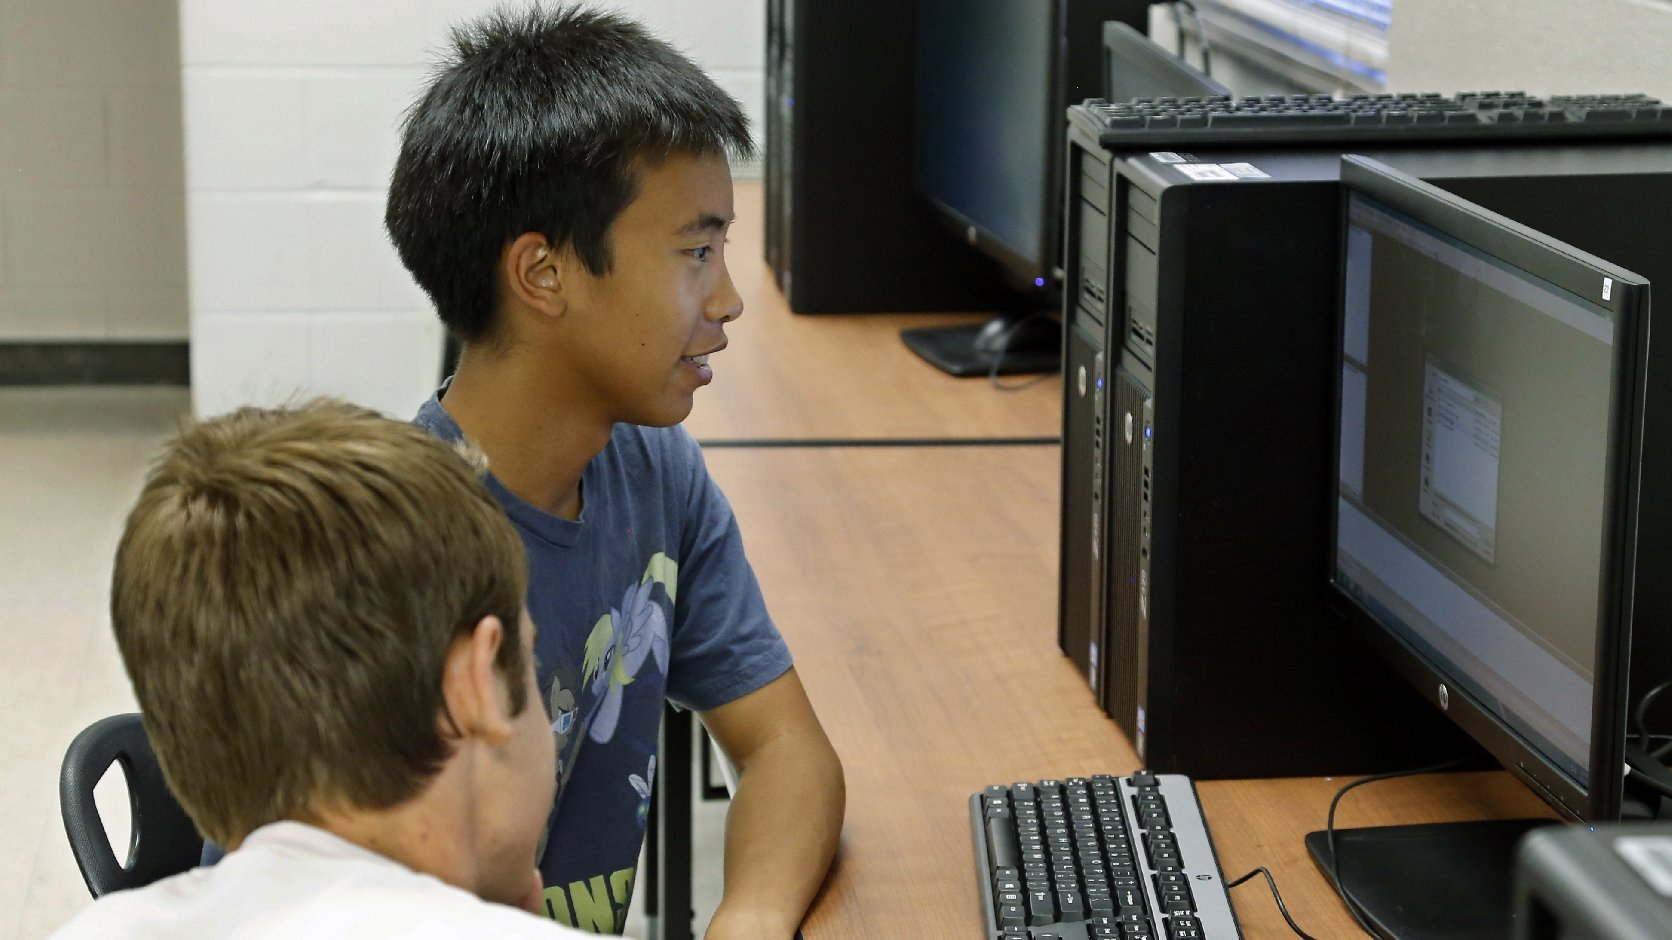 Demand for Computer Science Classes Grows, Along With Digital Divide